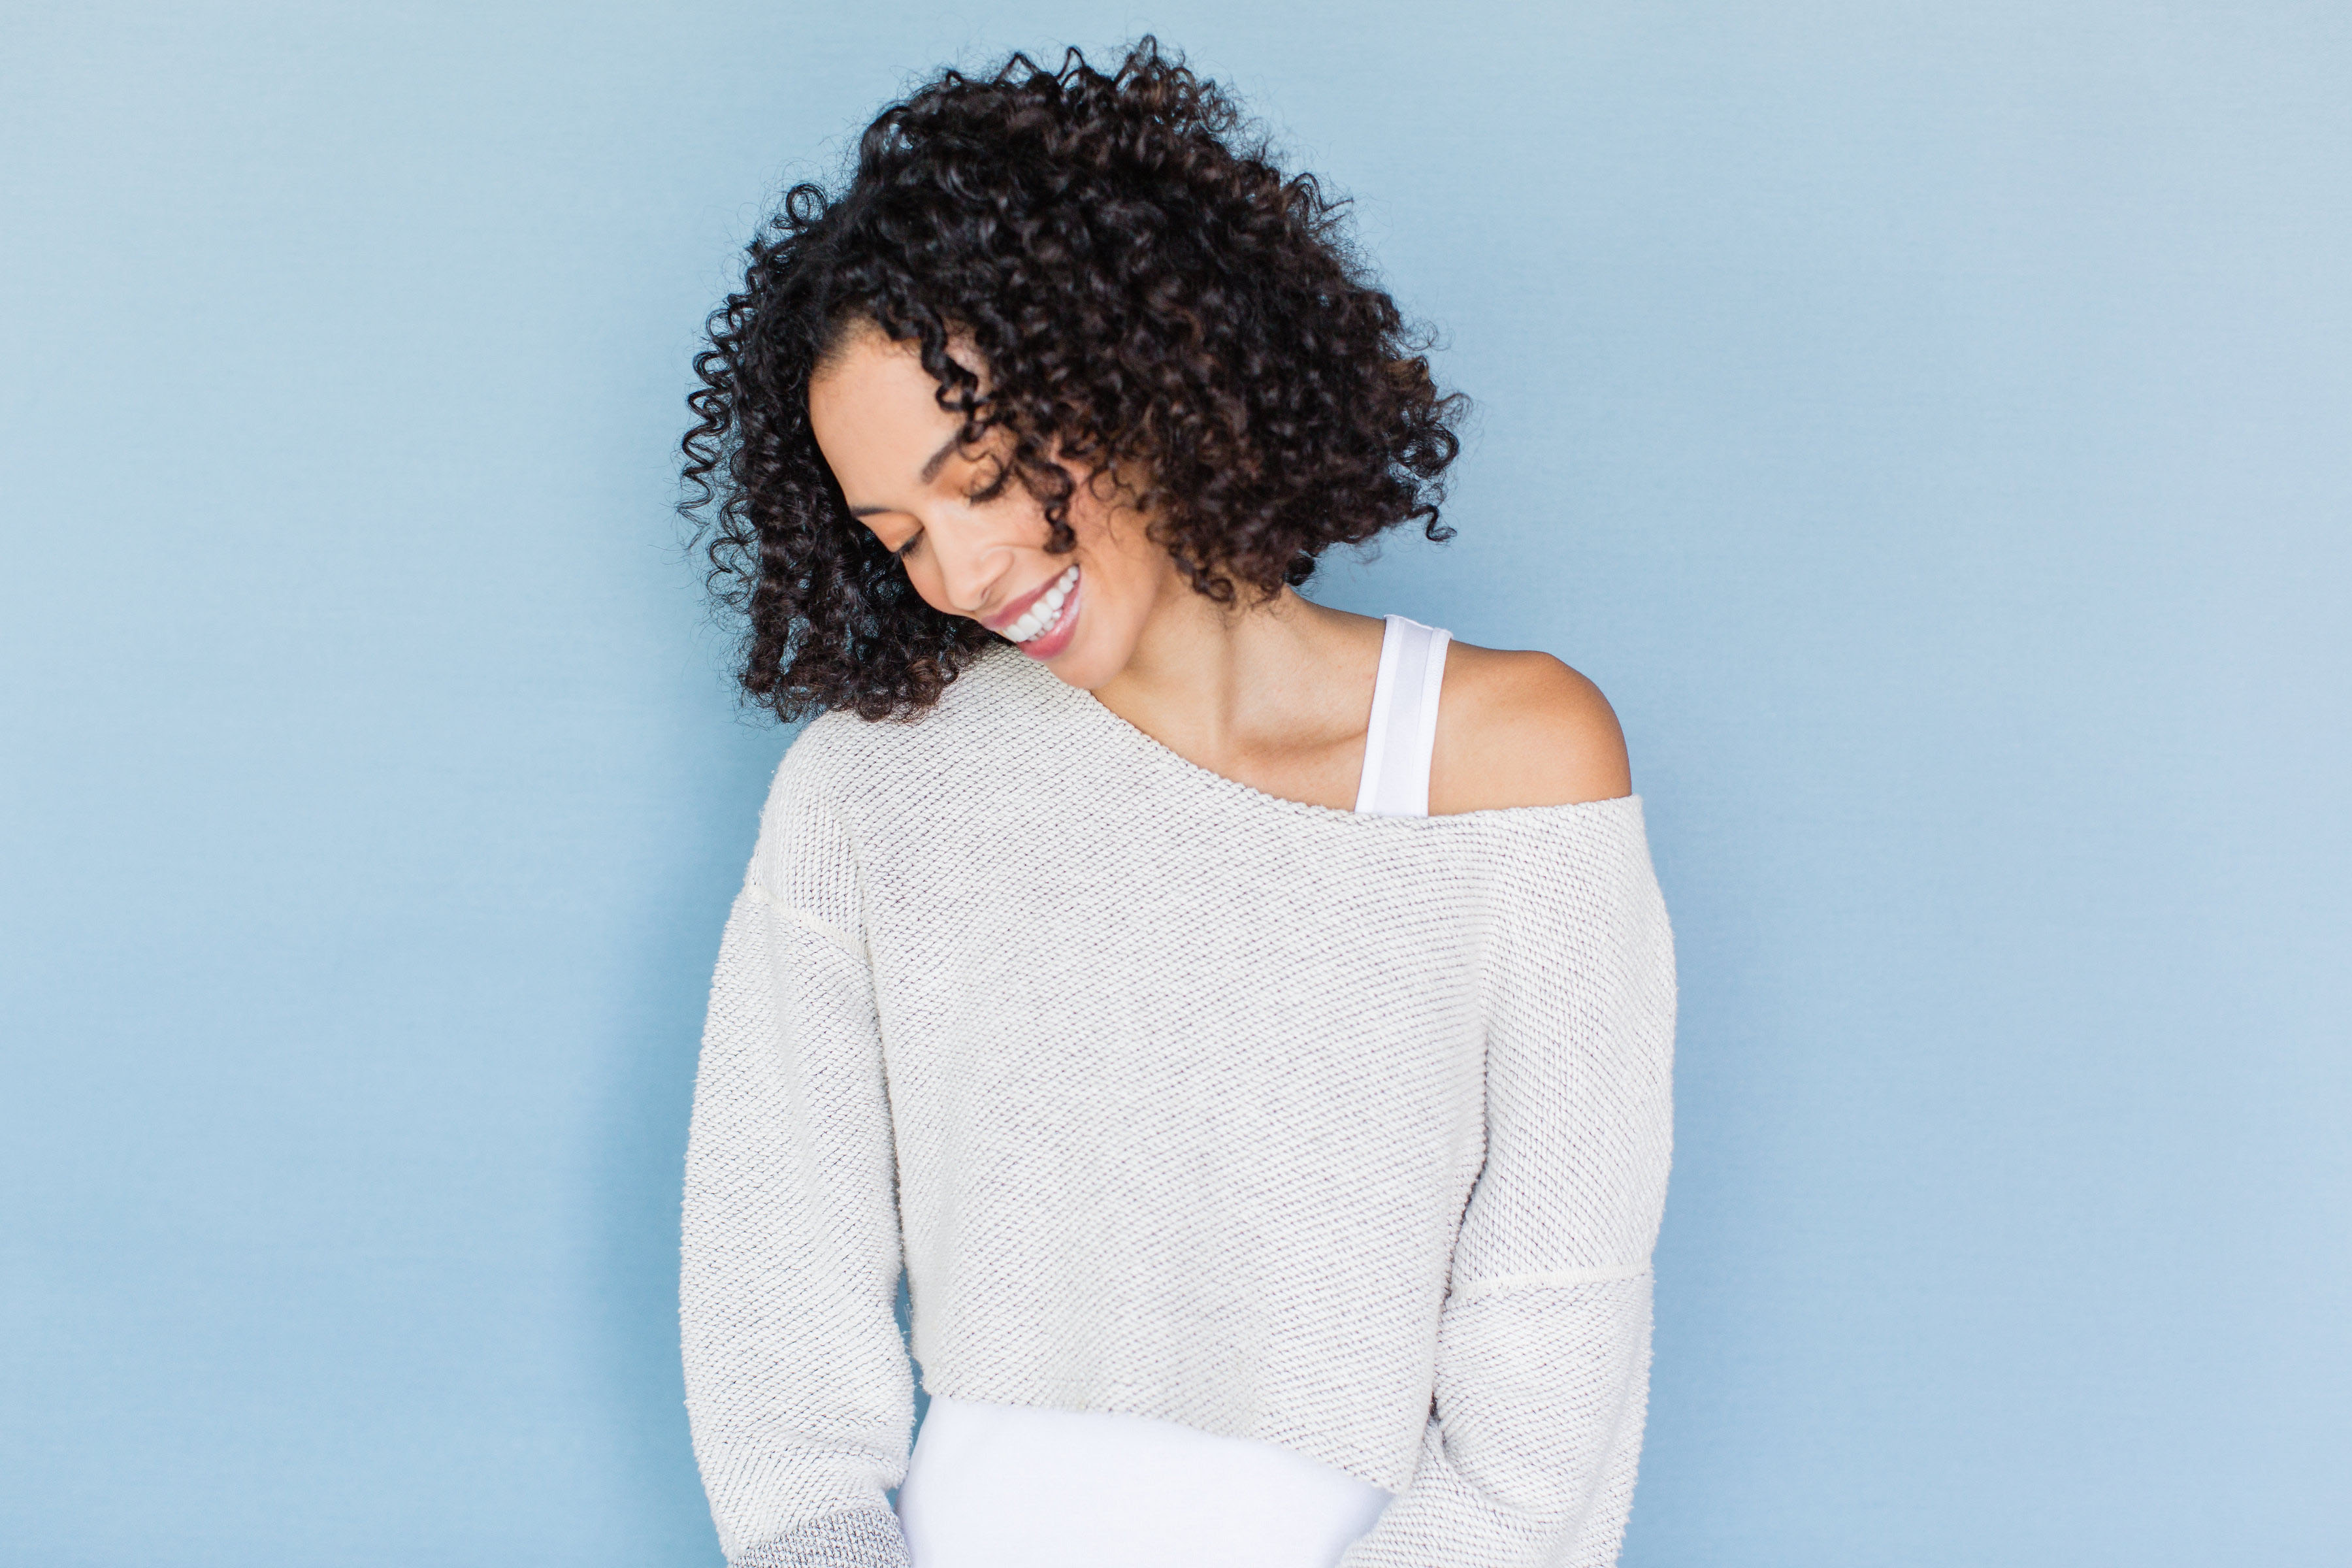 woman smiling in front of blue background